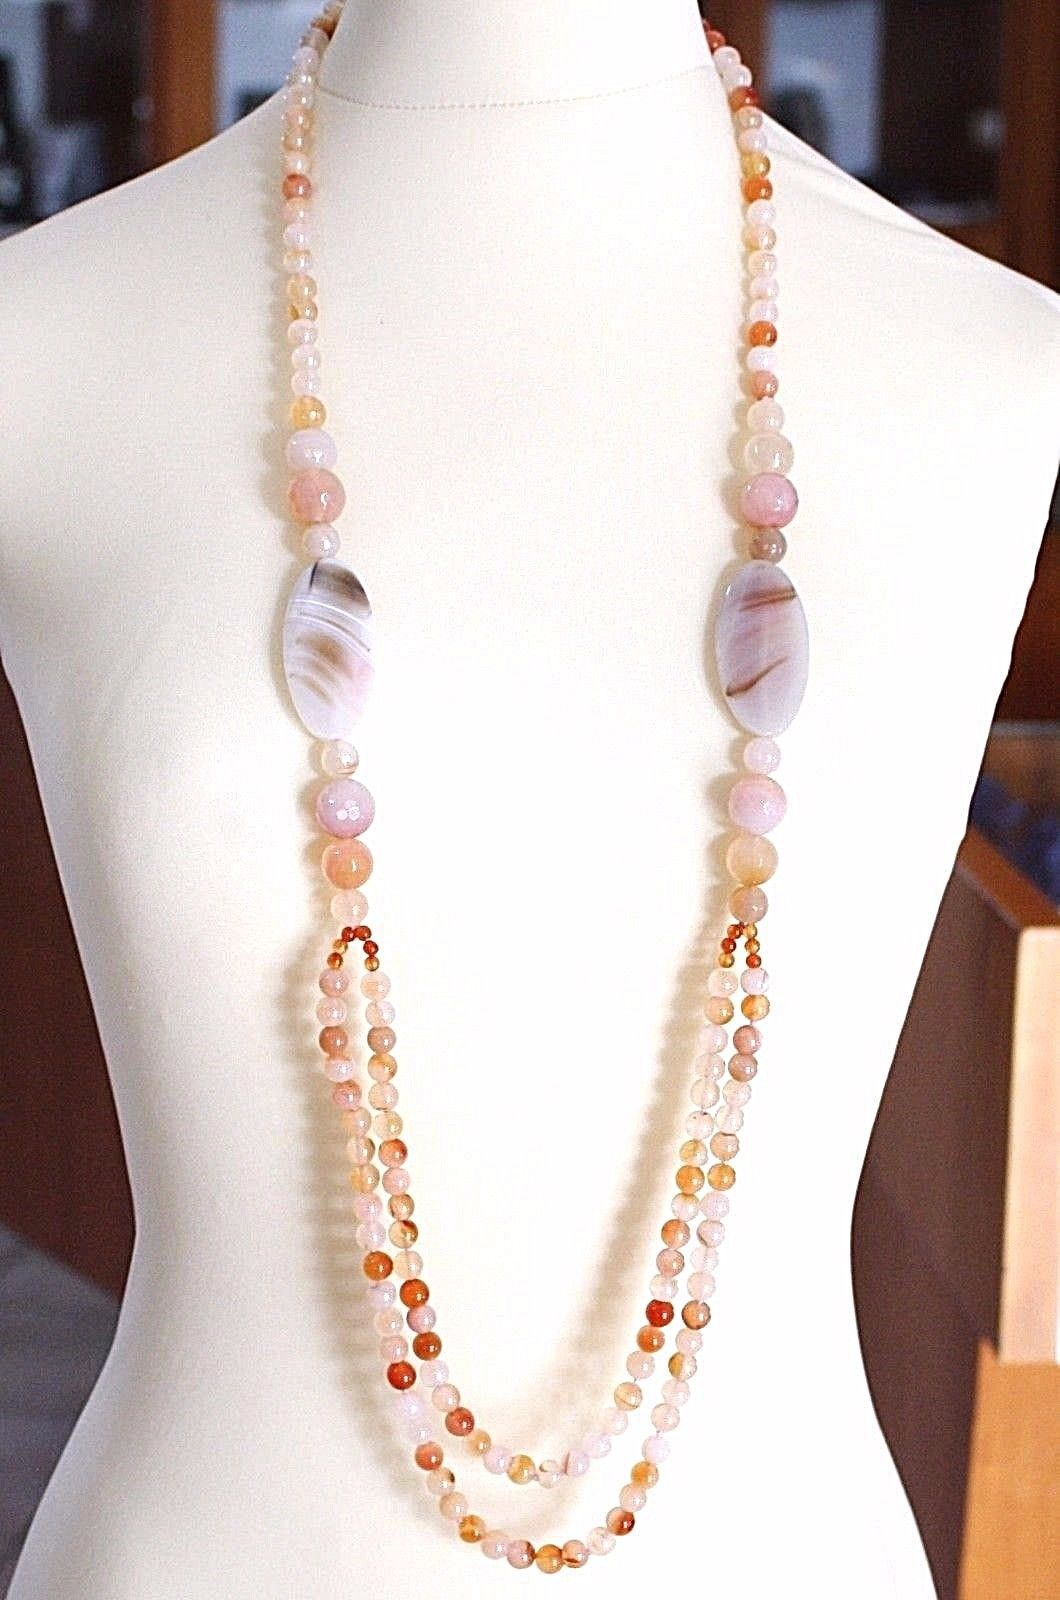 Long necklace 100 CM, 1 Meter Red Agate and Brown, Oval Spheres, double wire